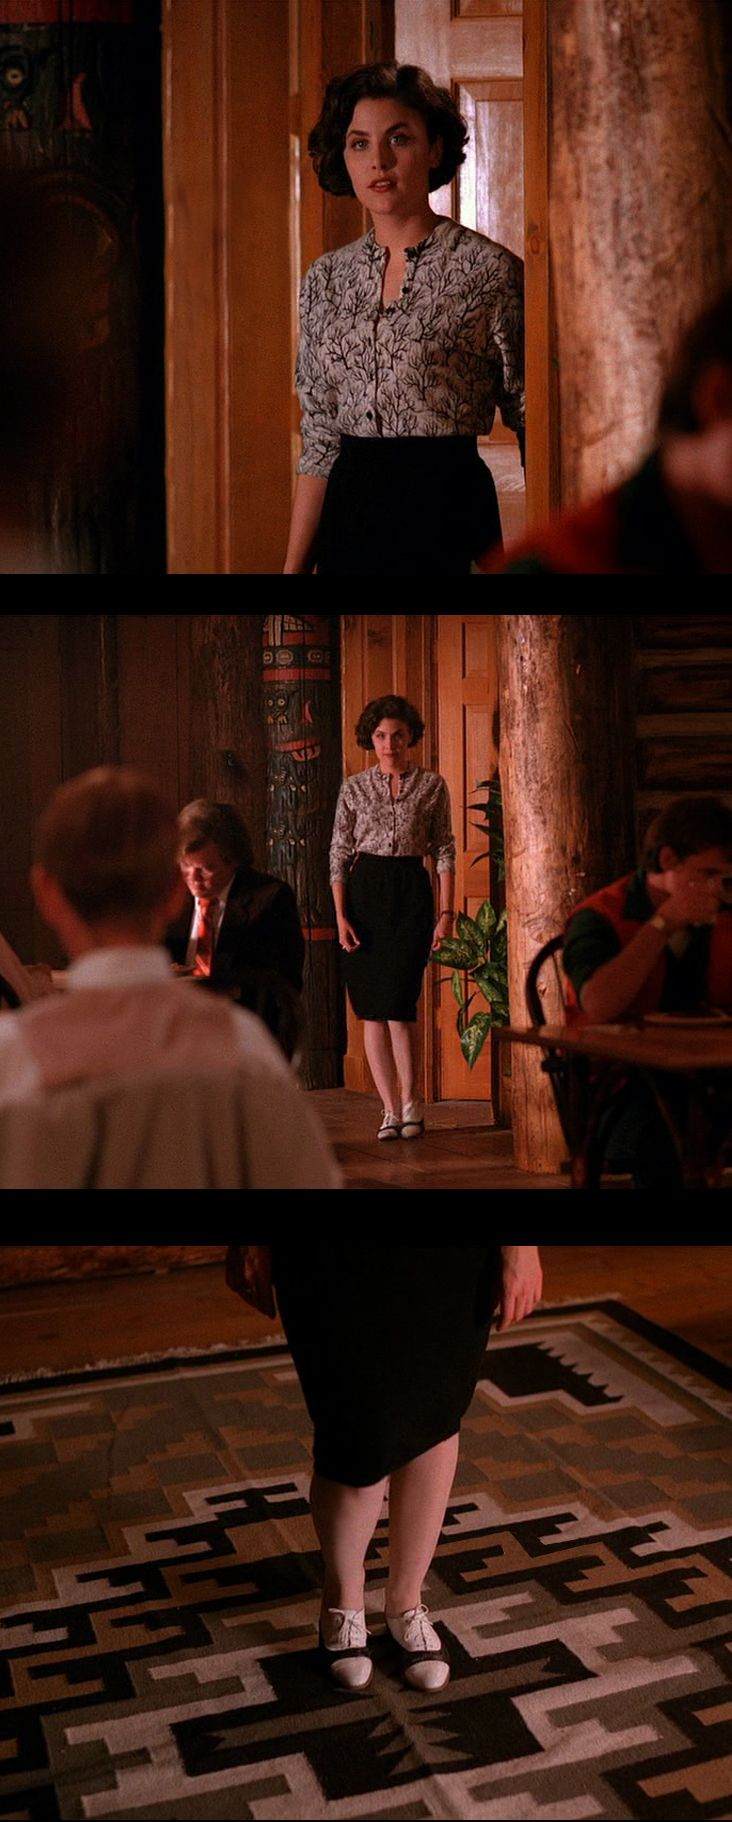 Audrey Horne in 'Twin Peaks' (1990). Costume Designer: Sara Markowitz That cardigan tho.